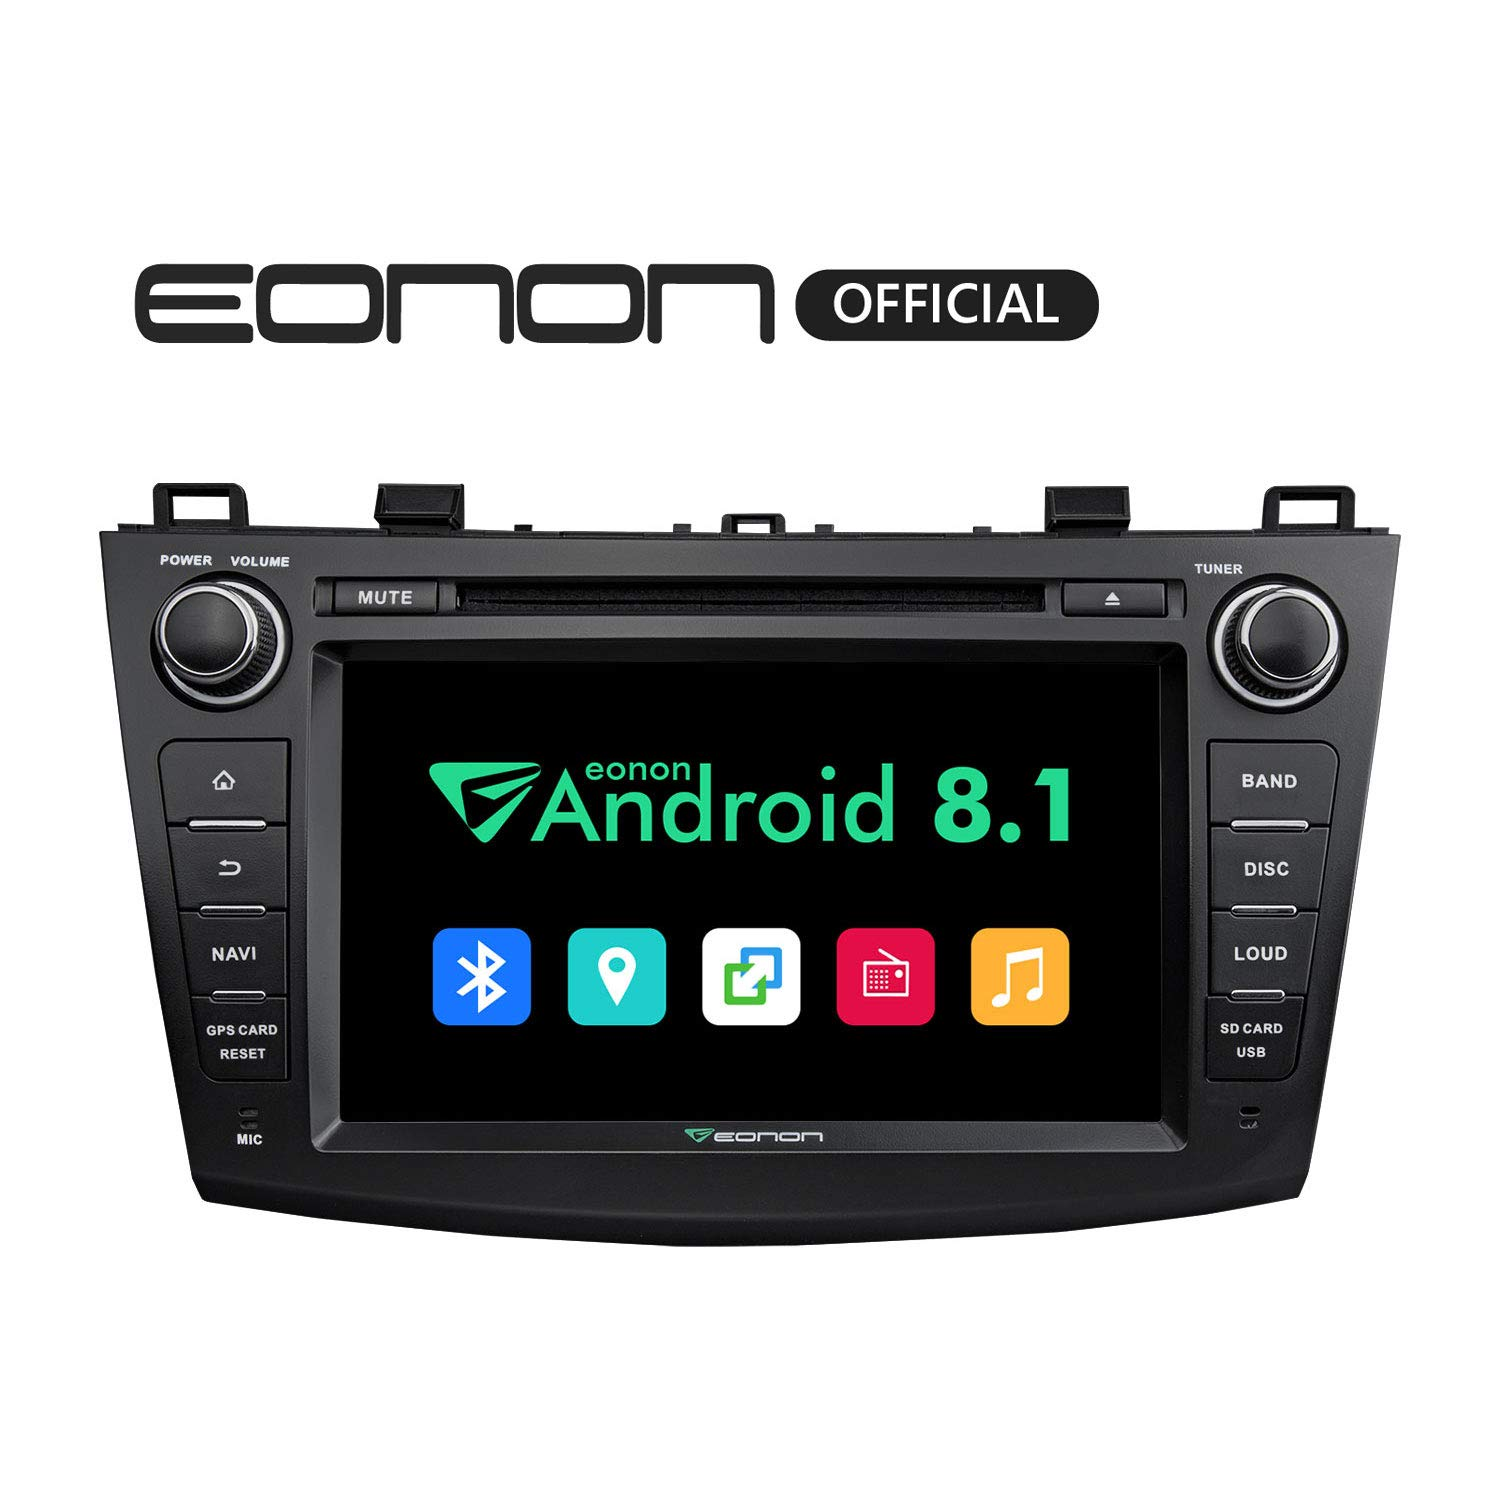 mazda 3 radio screen amazon com  how to disconnect the mazda 3 car stereo wiring harness #10